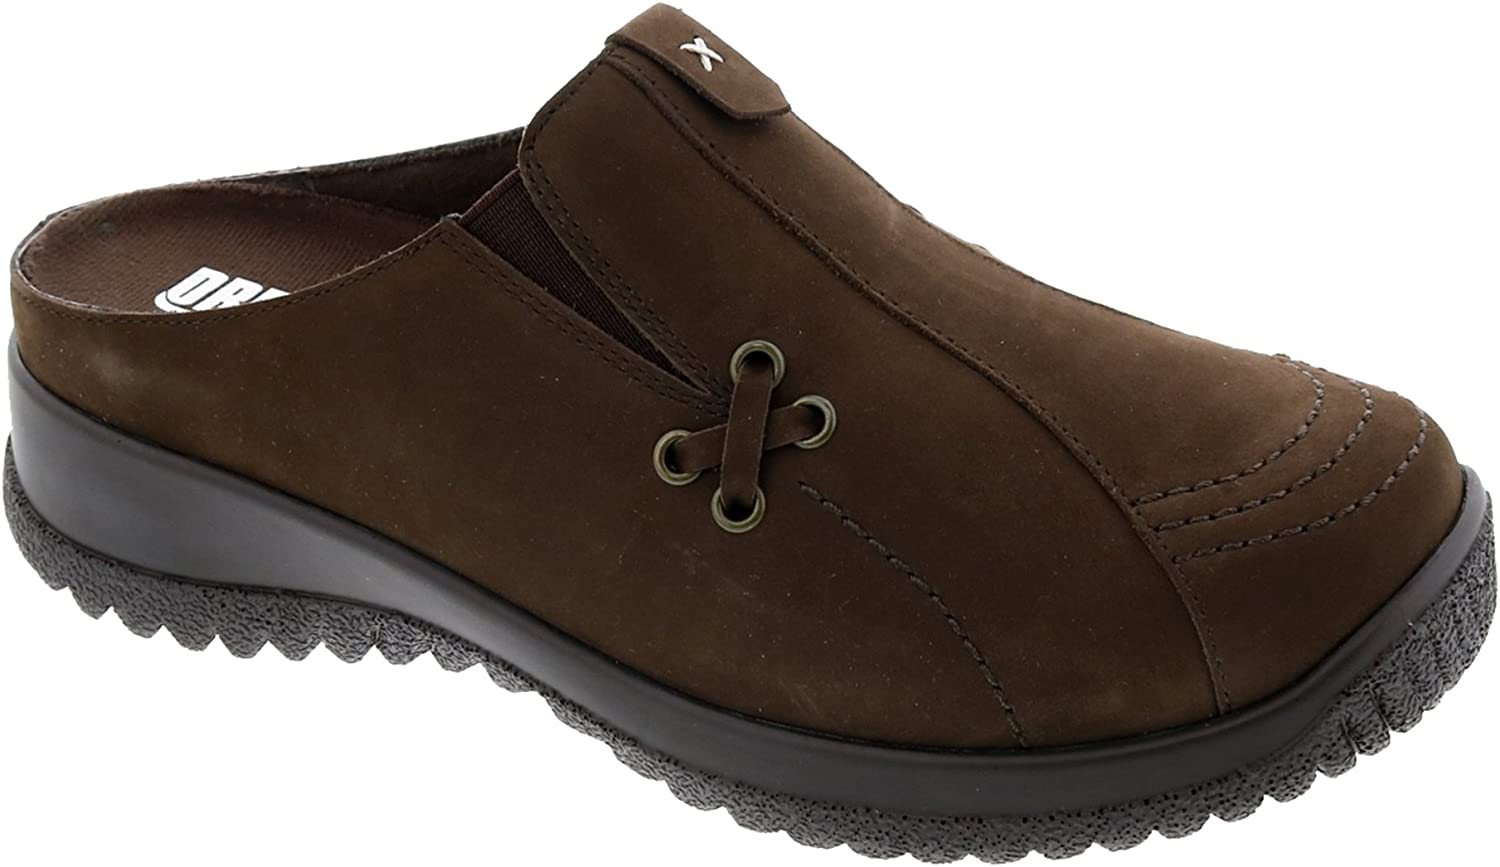 Drew Shoes Hannah 17102 Baltimore Mall Women's Casual Brown Nubuck 11 Clog: Max 80% OFF Nar